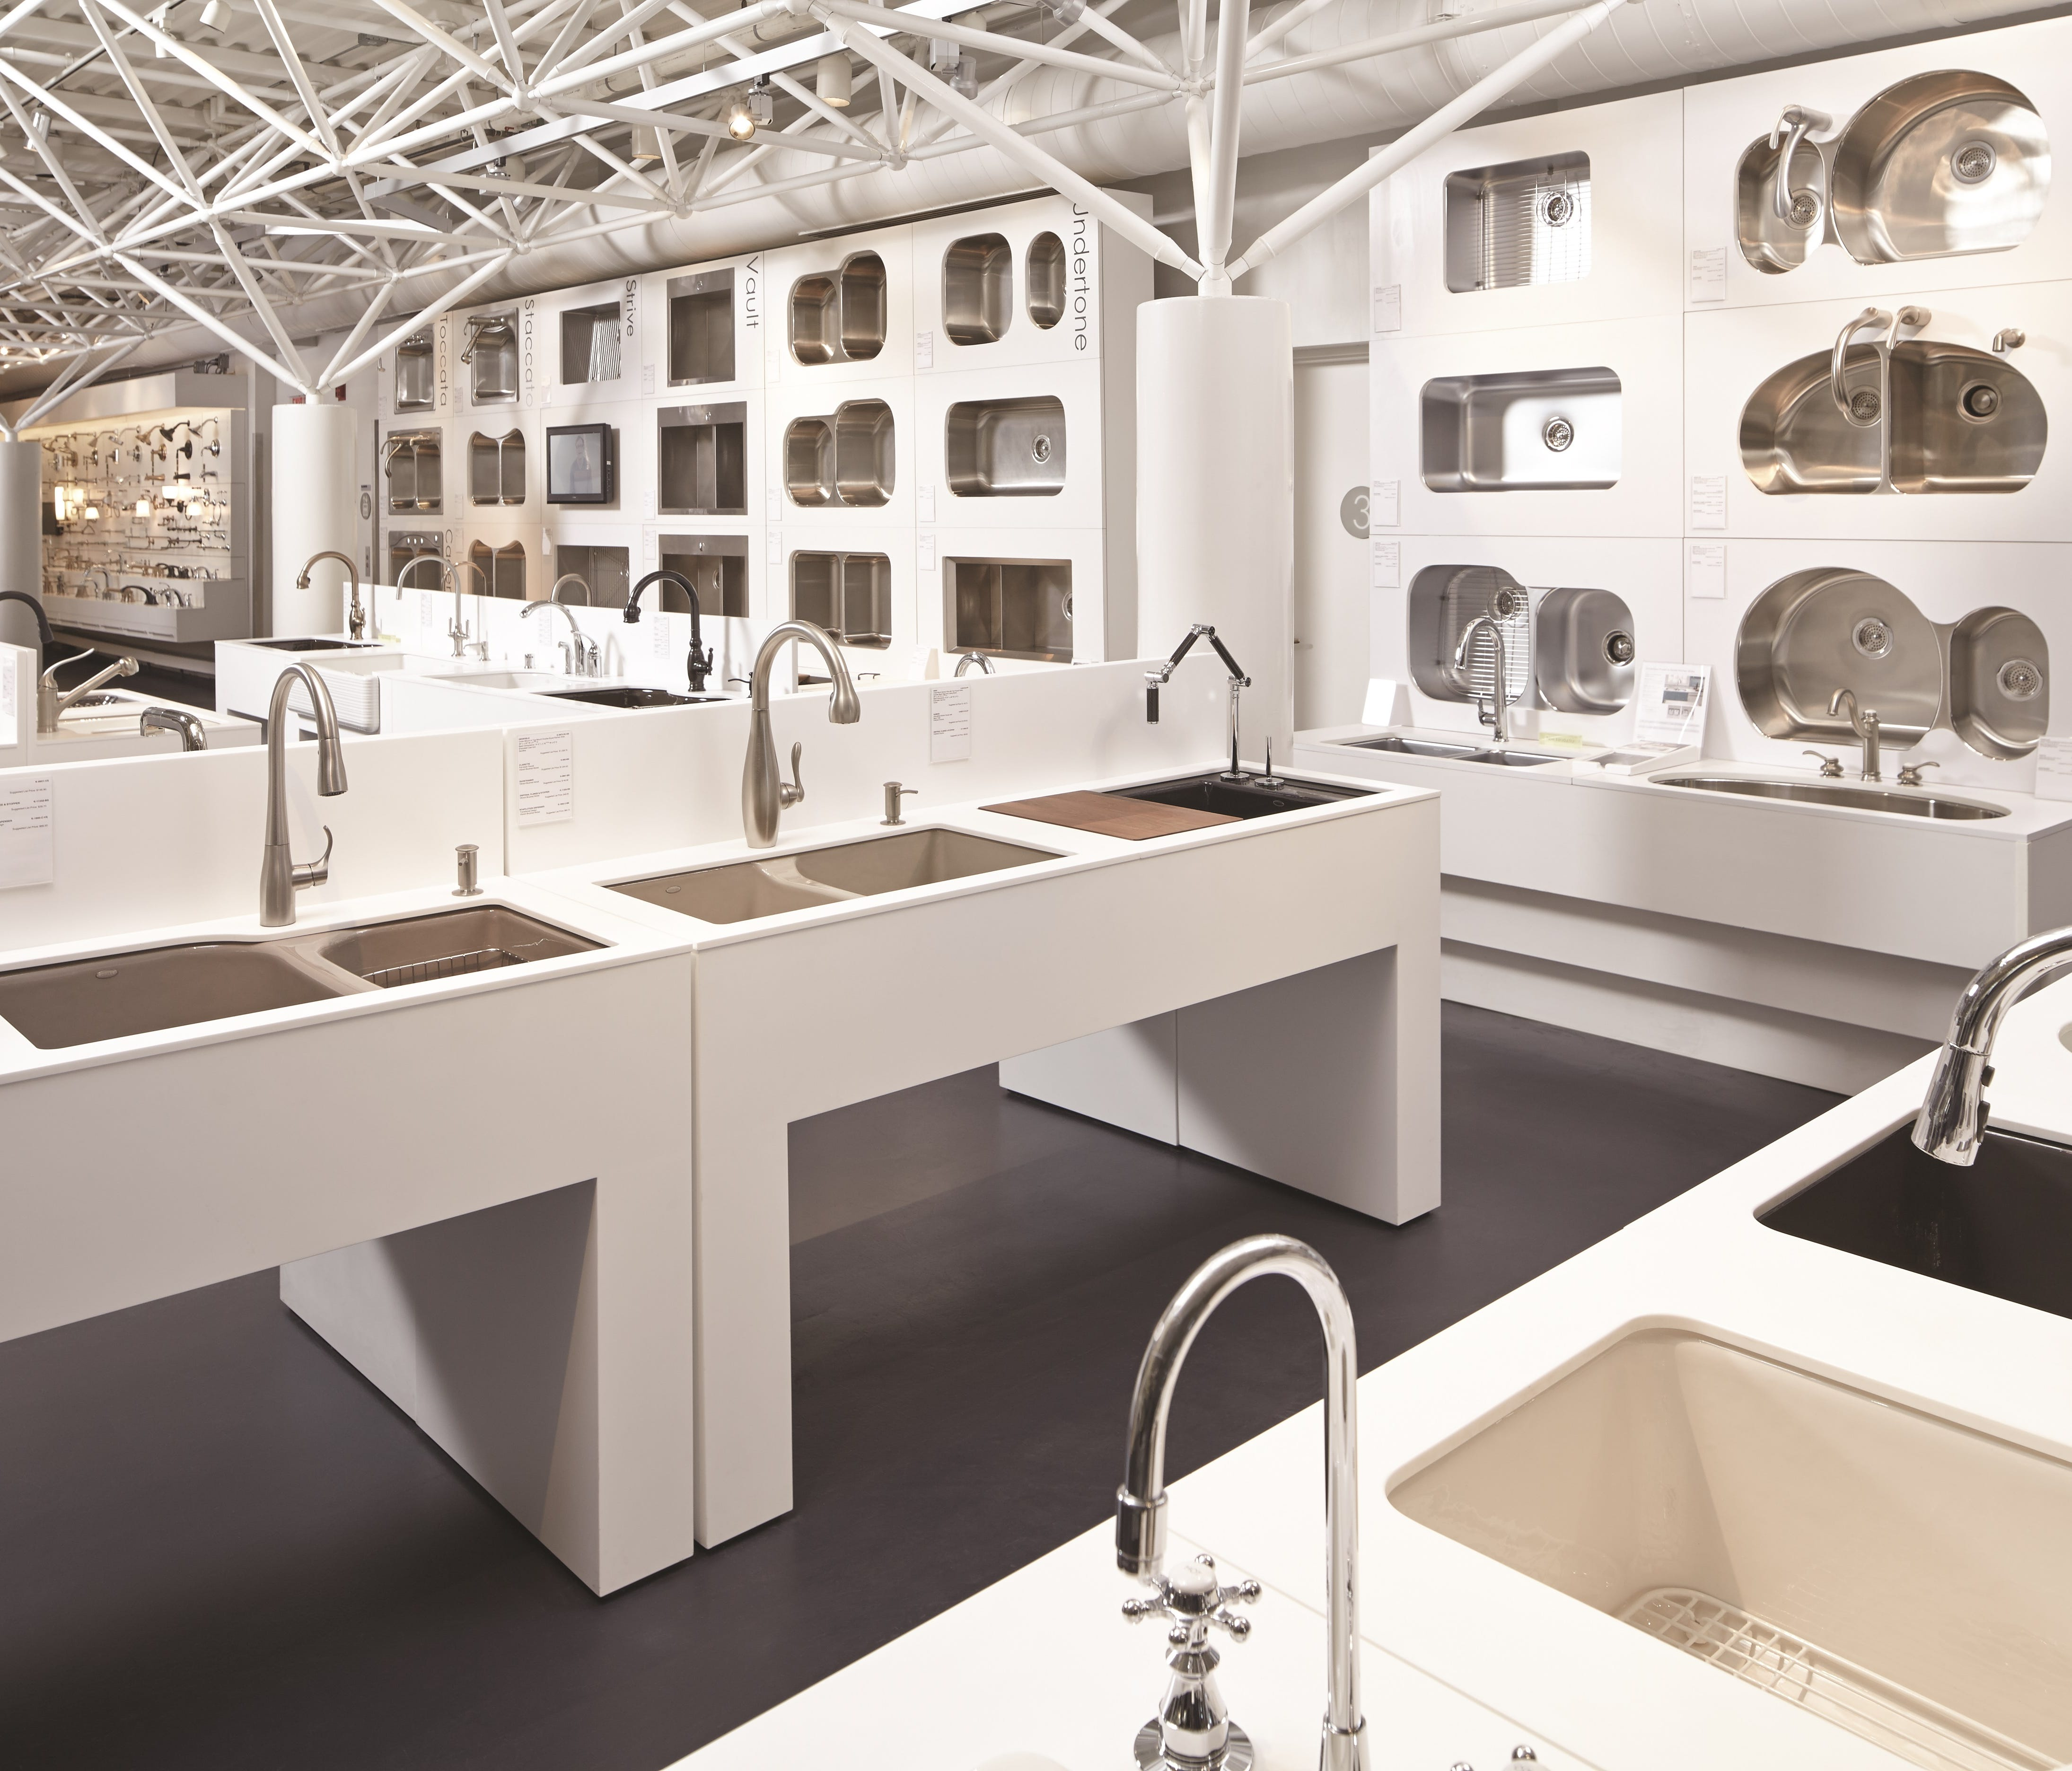 Many of the kitchen faucets Kohler makes are hooked up to water and operational so visitors can try them out for themselves at the Kohler Design Center.